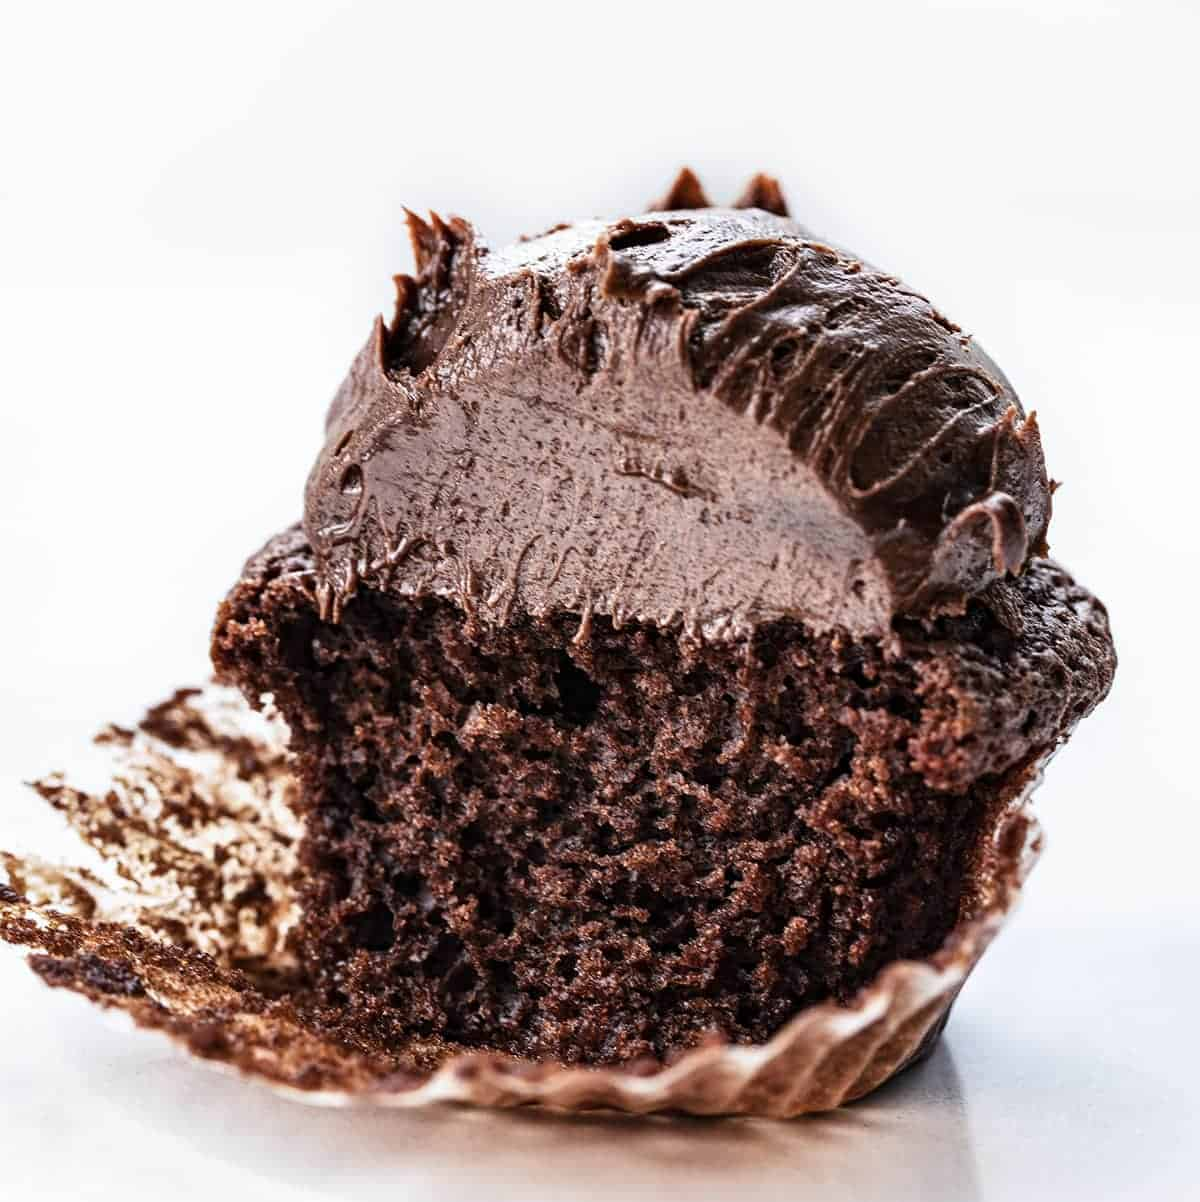 Chocolate Brownie Cupcake Cut Into Showing Soft Texture Inside